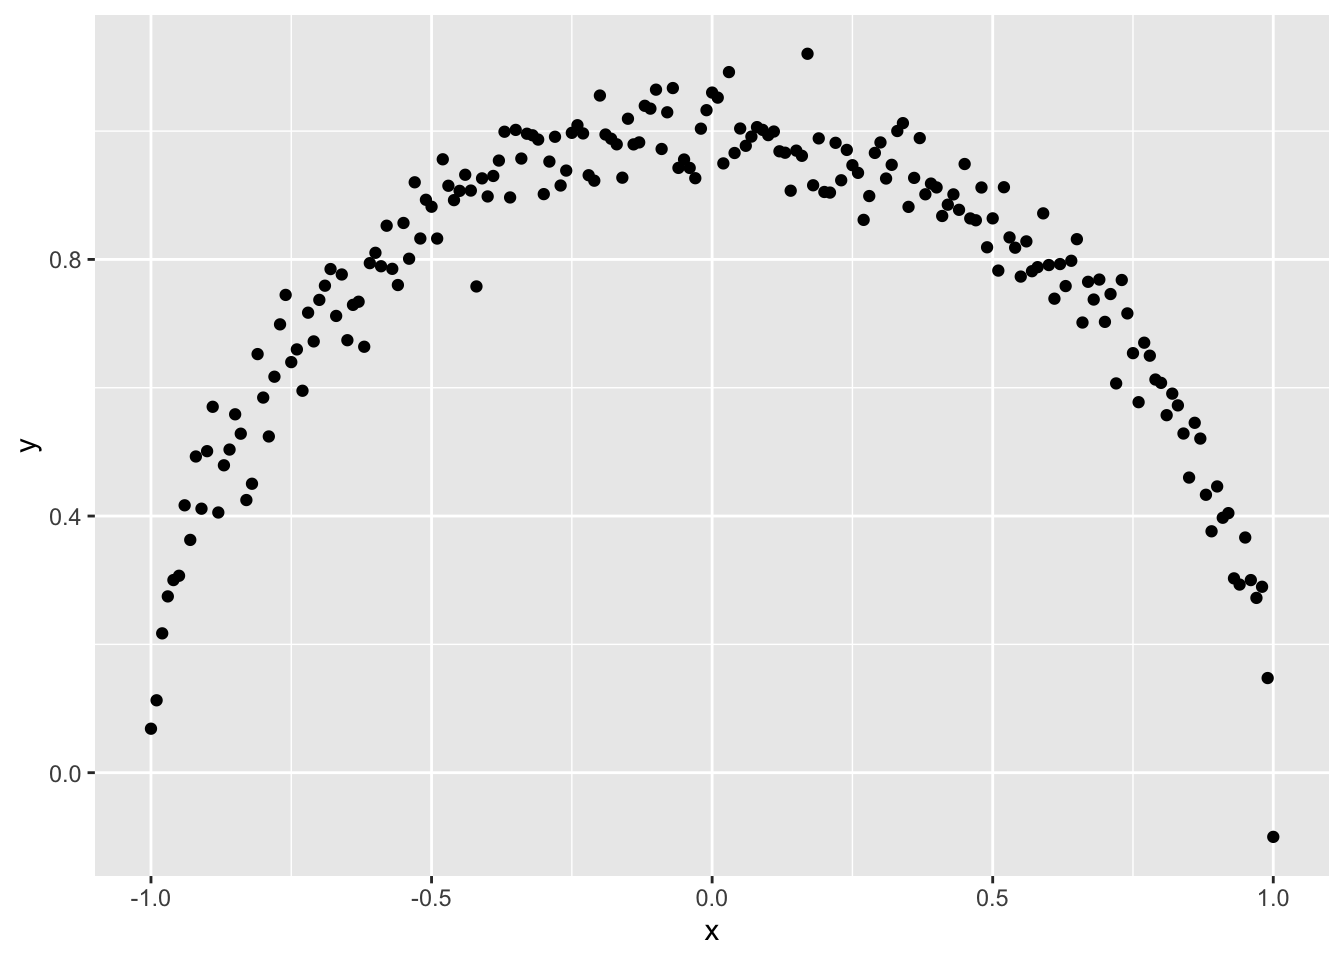 An Alternative to the Correlation Coefficient That Works For Numeric and Categorical Variables | R-bloggers